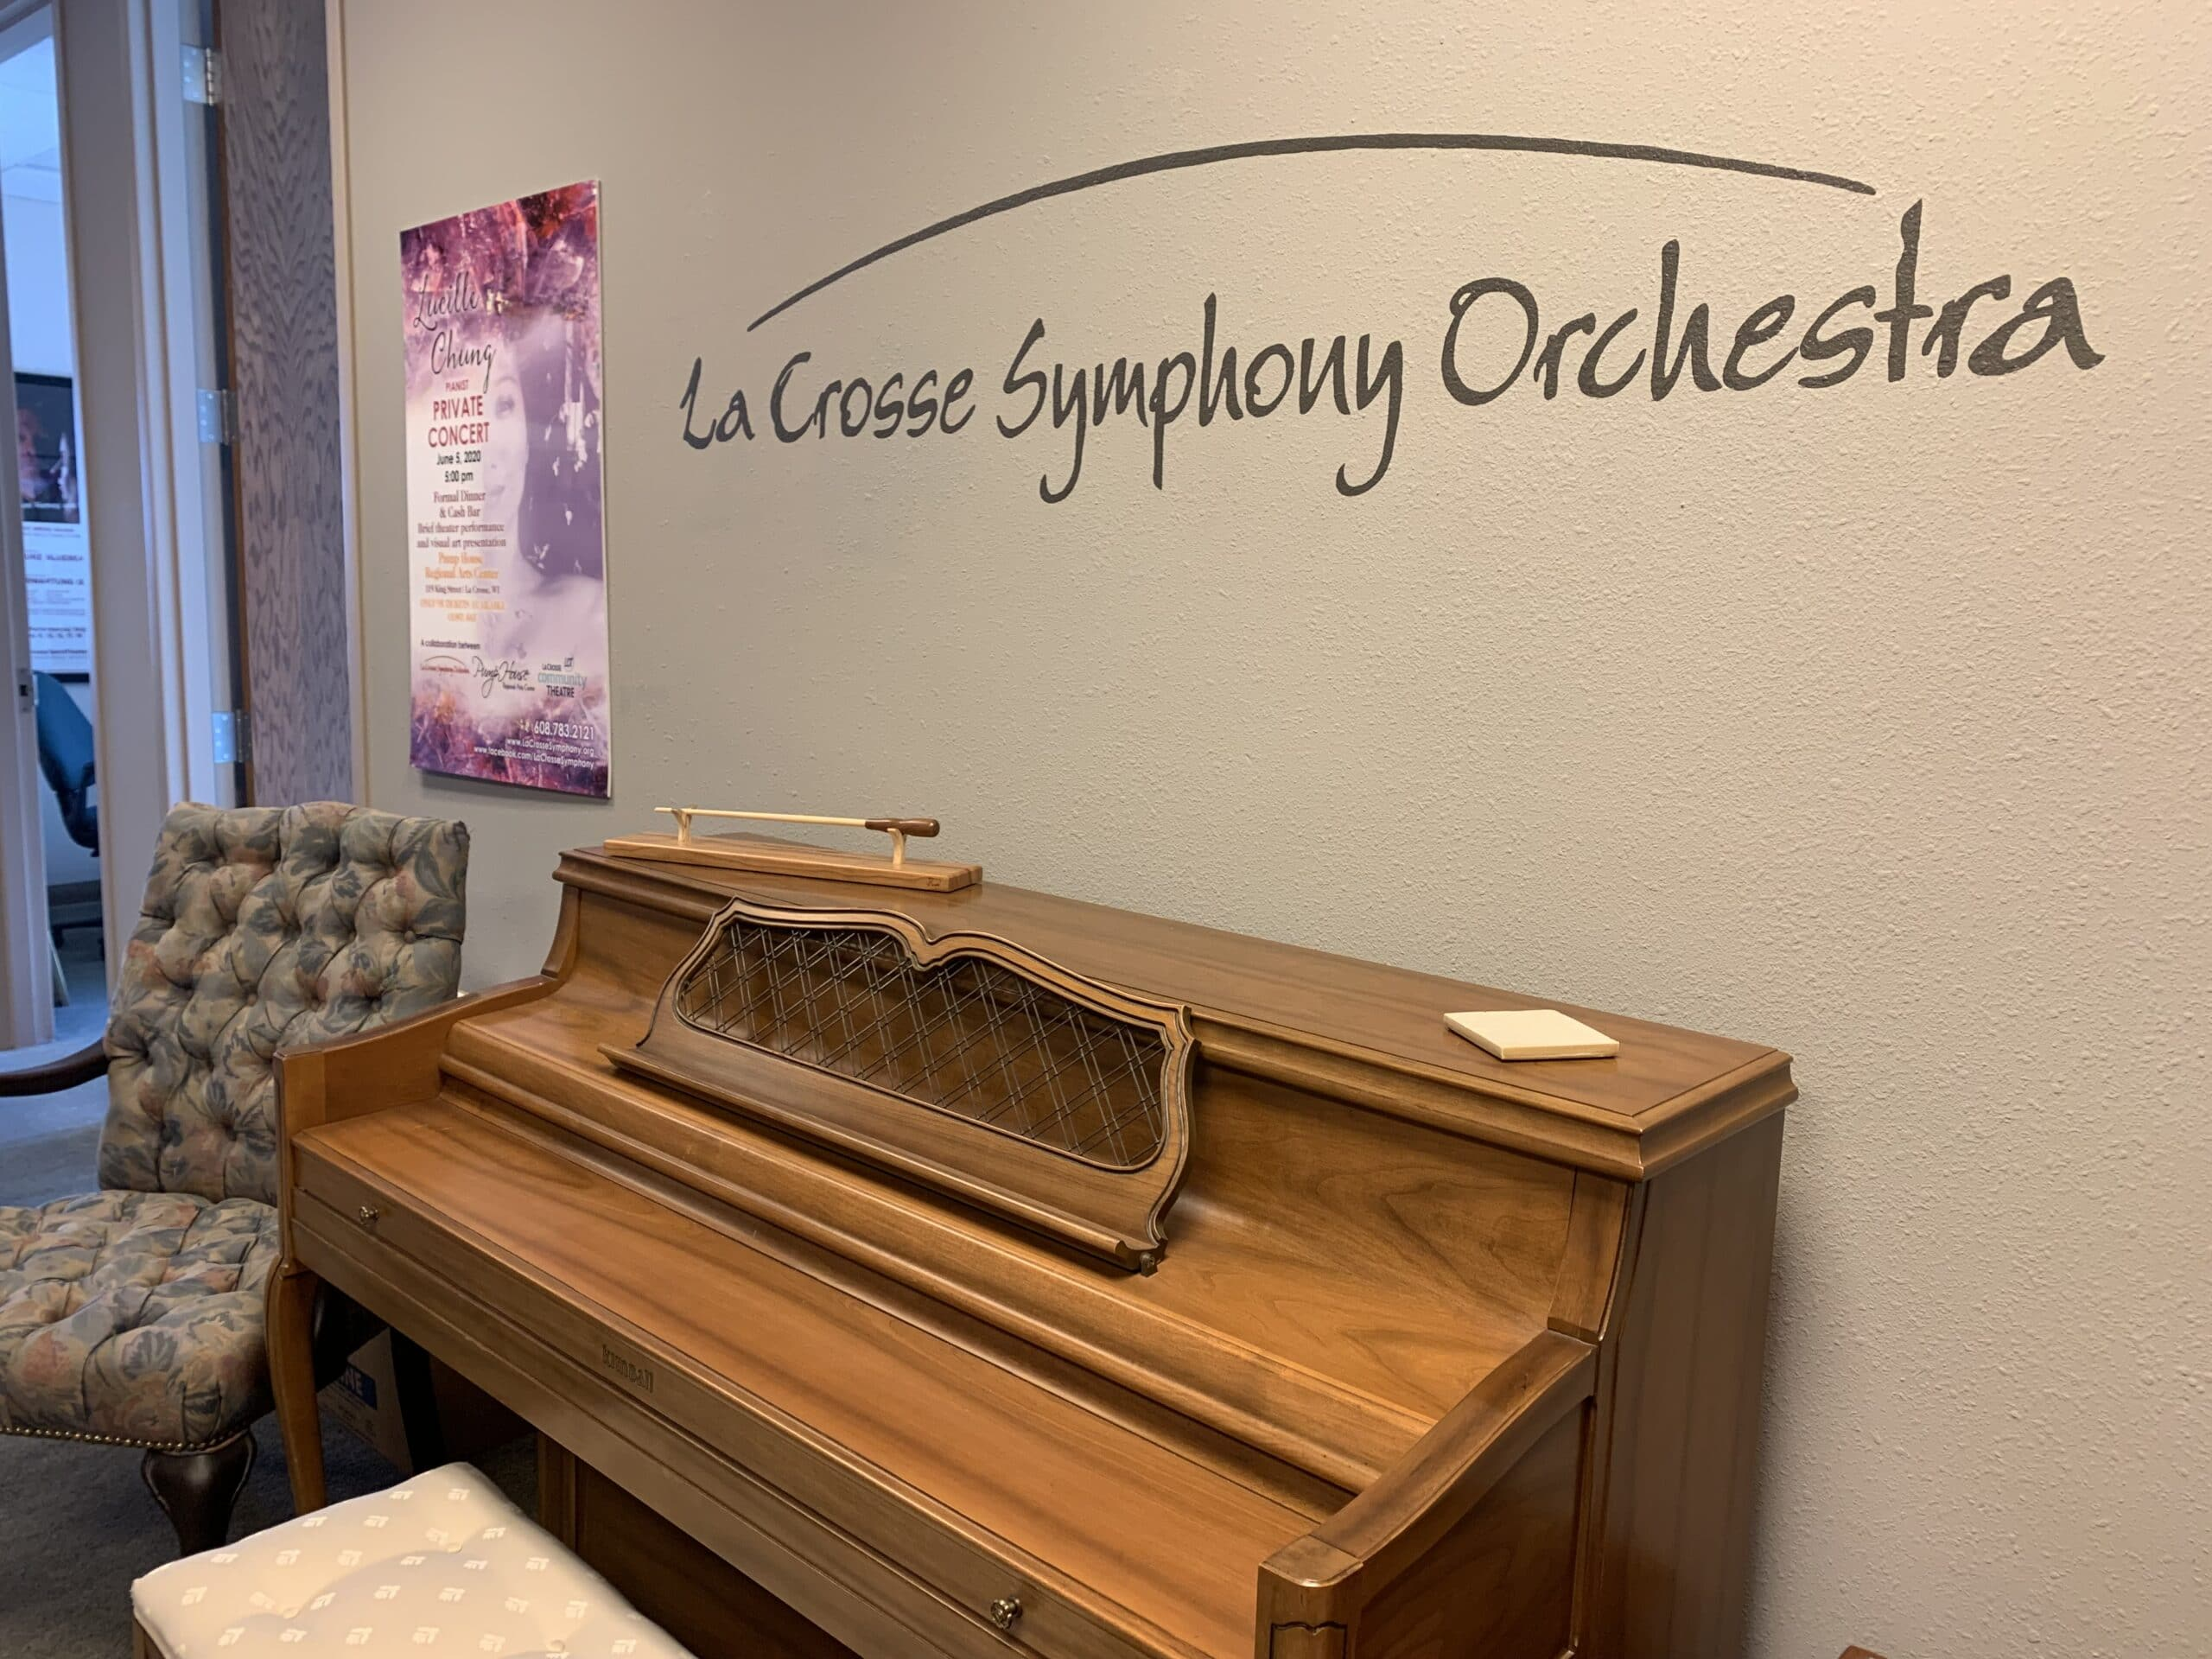 LSO Office image with piano